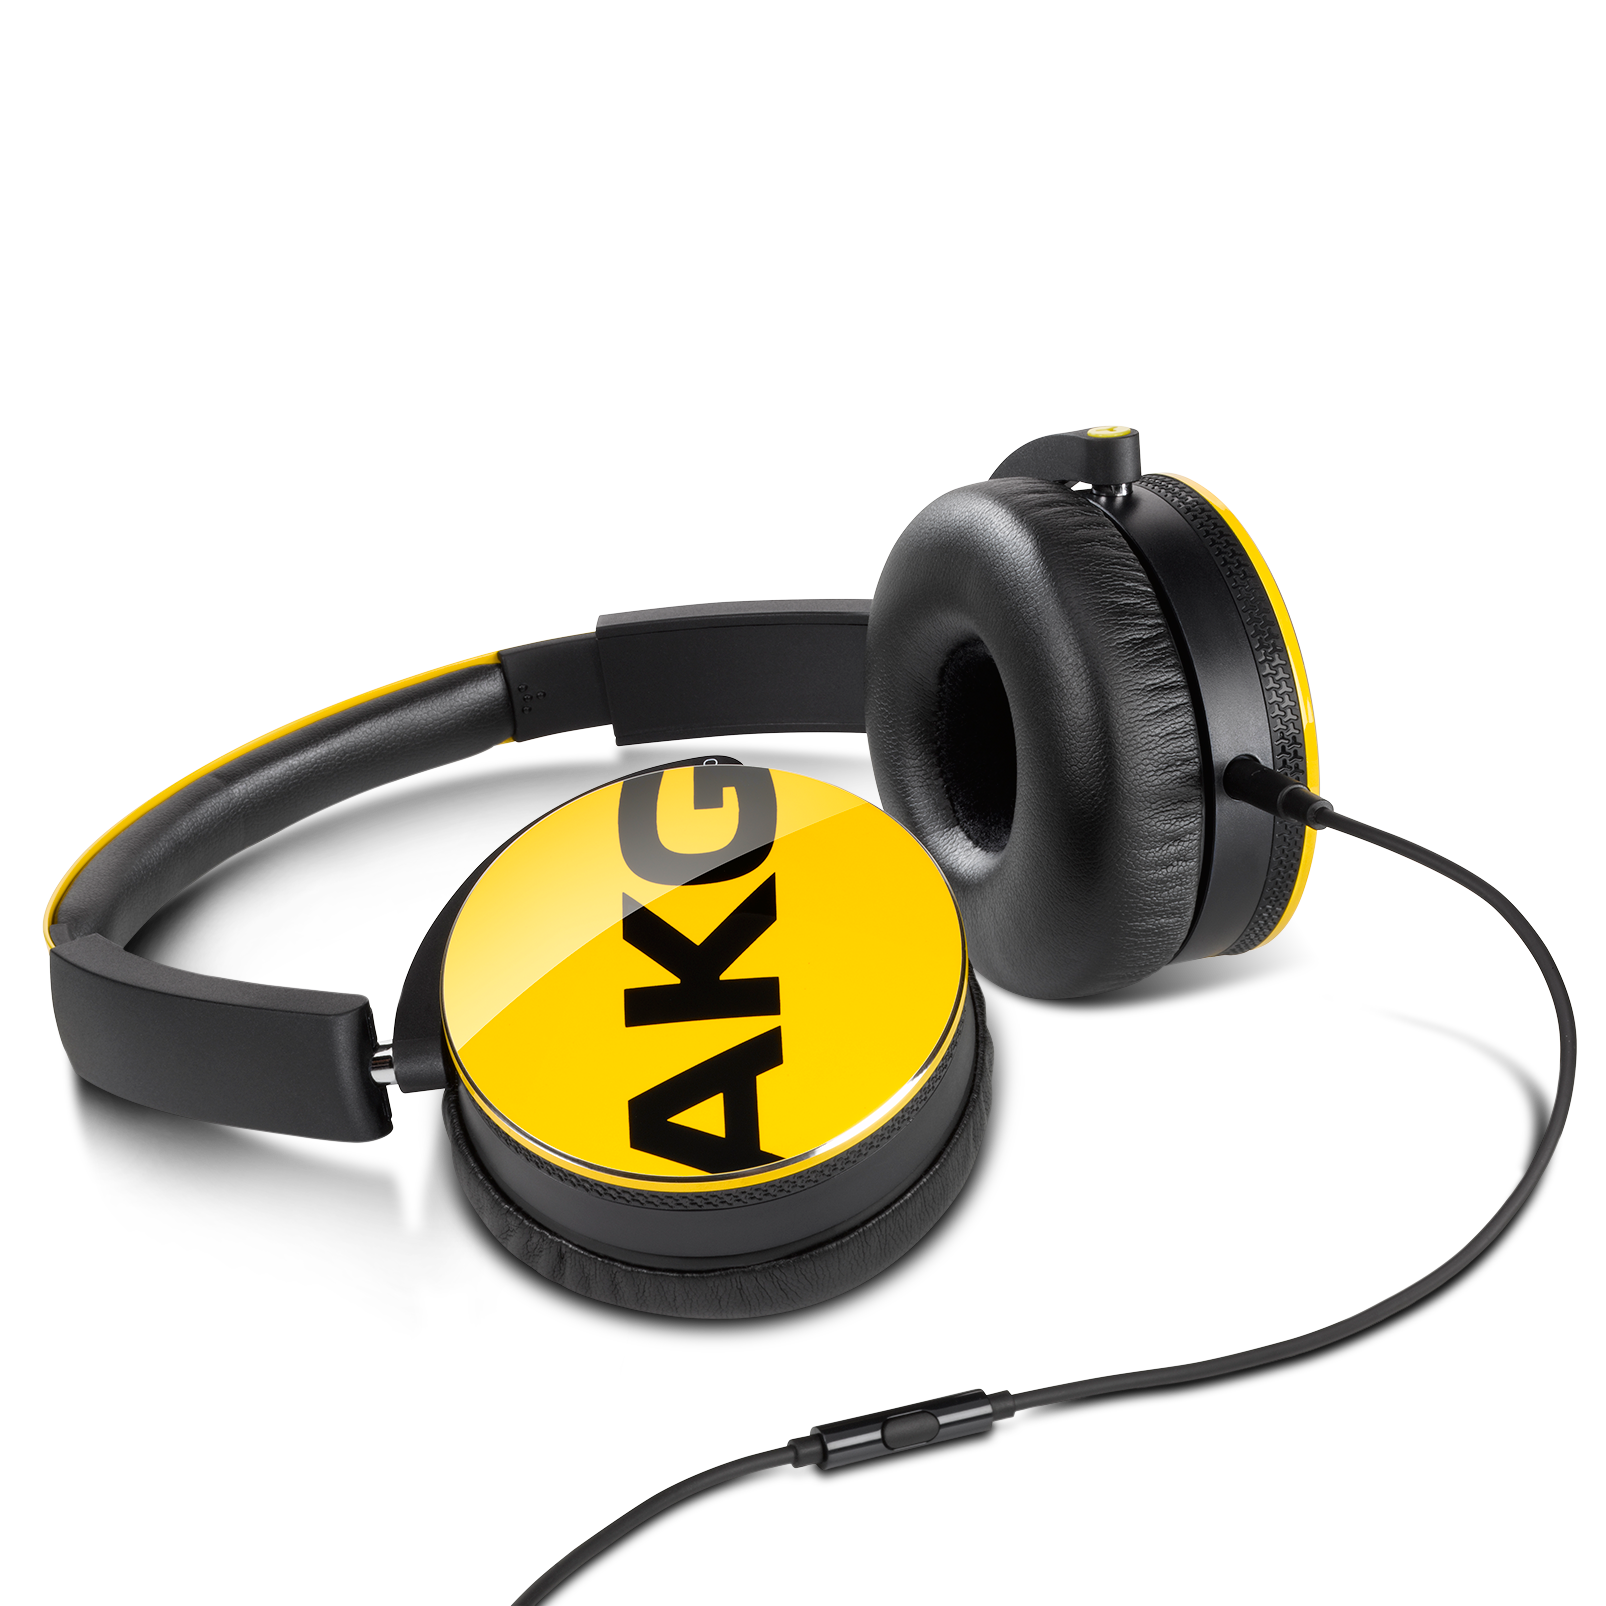 Y50 - Yellow - On-ear headphones with AKG-quality sound, smart styling, snug fit and detachable cable with in-line remote/mic - Detailshot 2